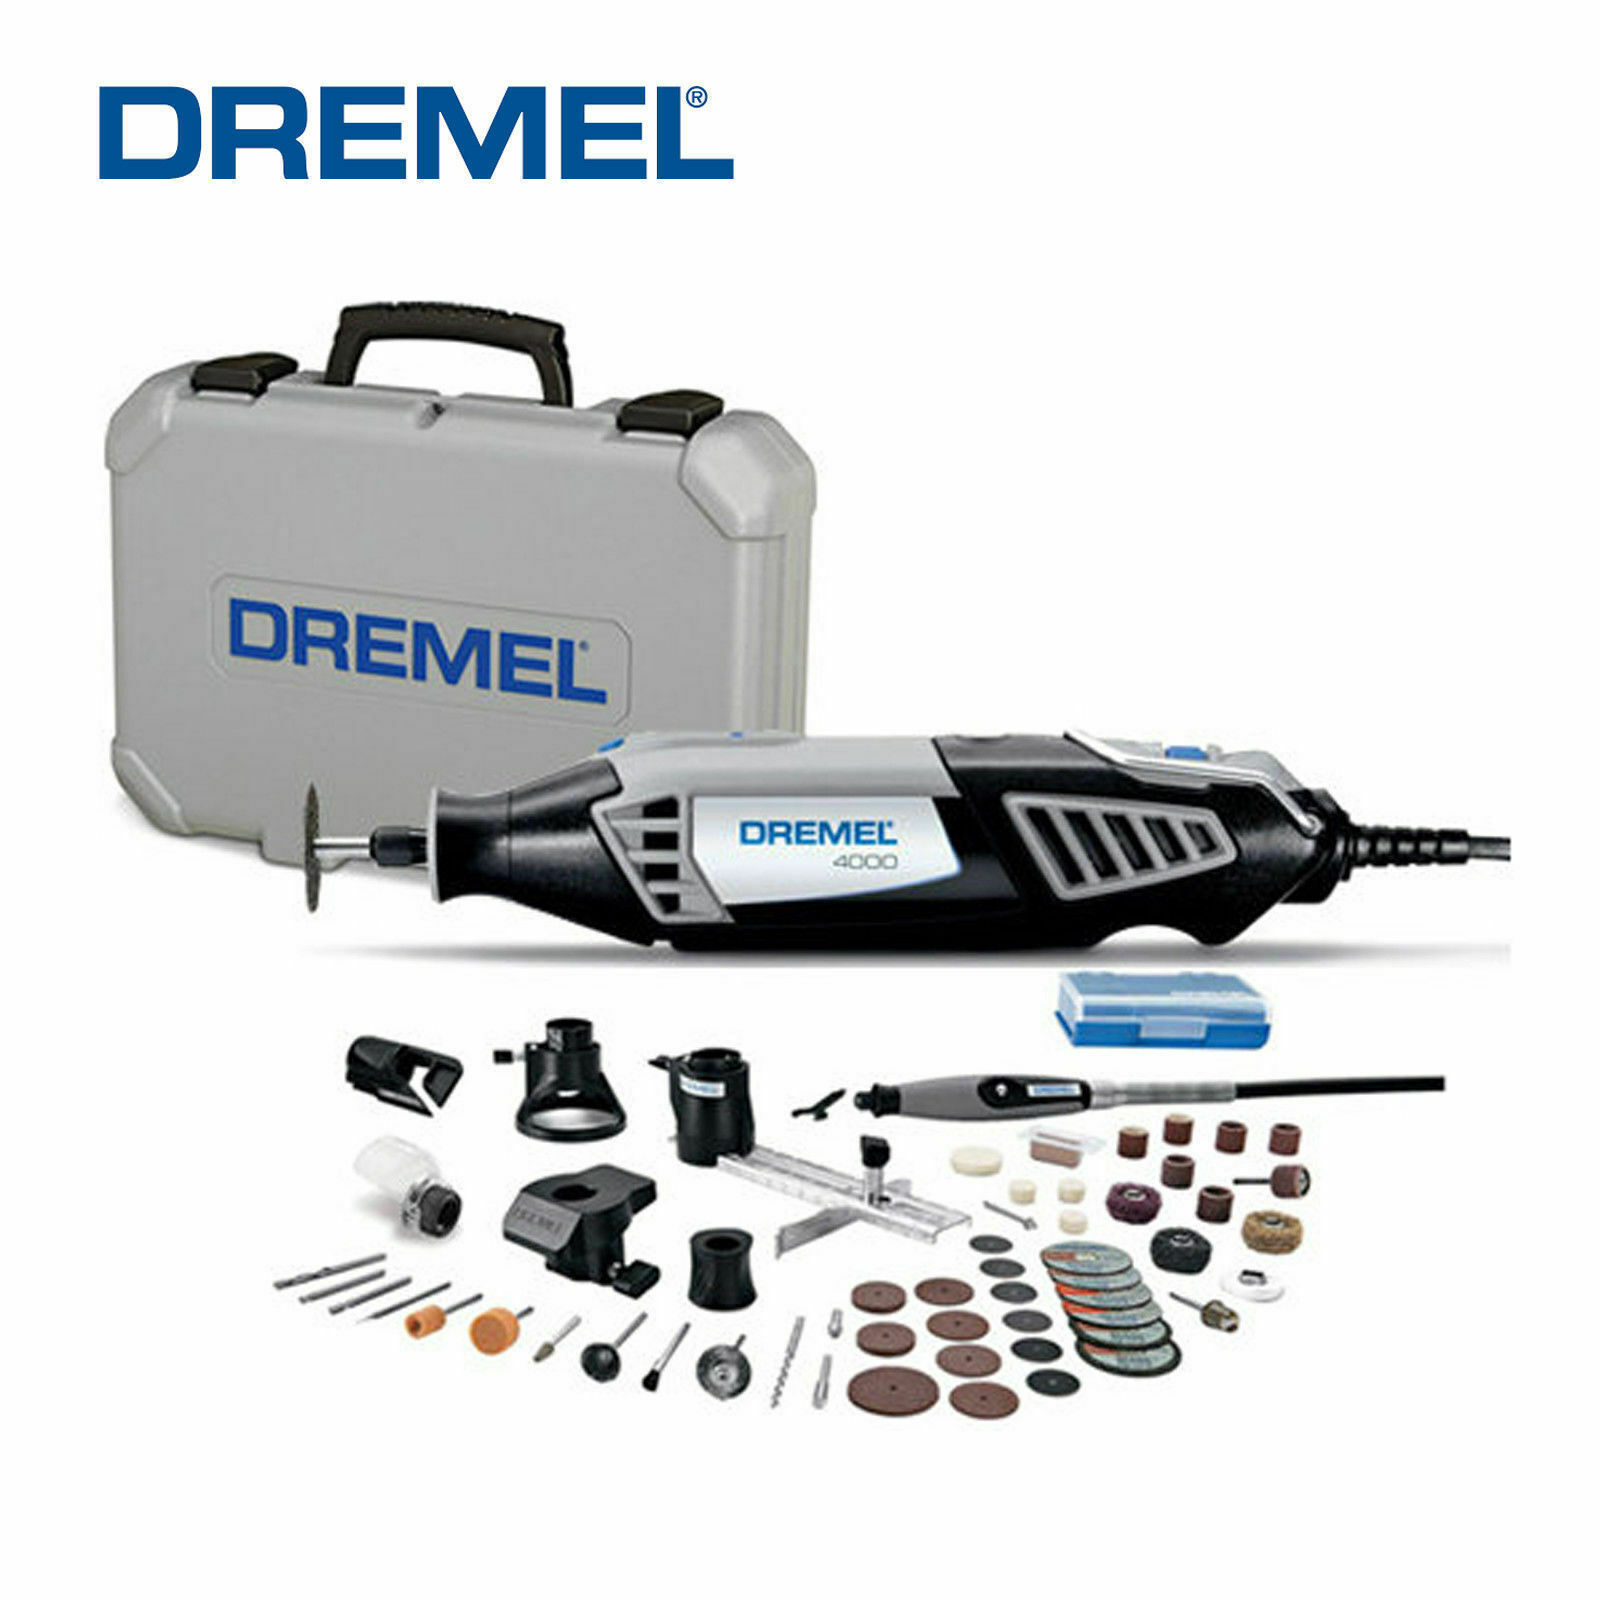 DREMEL 4000-6/50 Variable Speed Rotary Tool Kit w/ 50 Accessories -- 220V